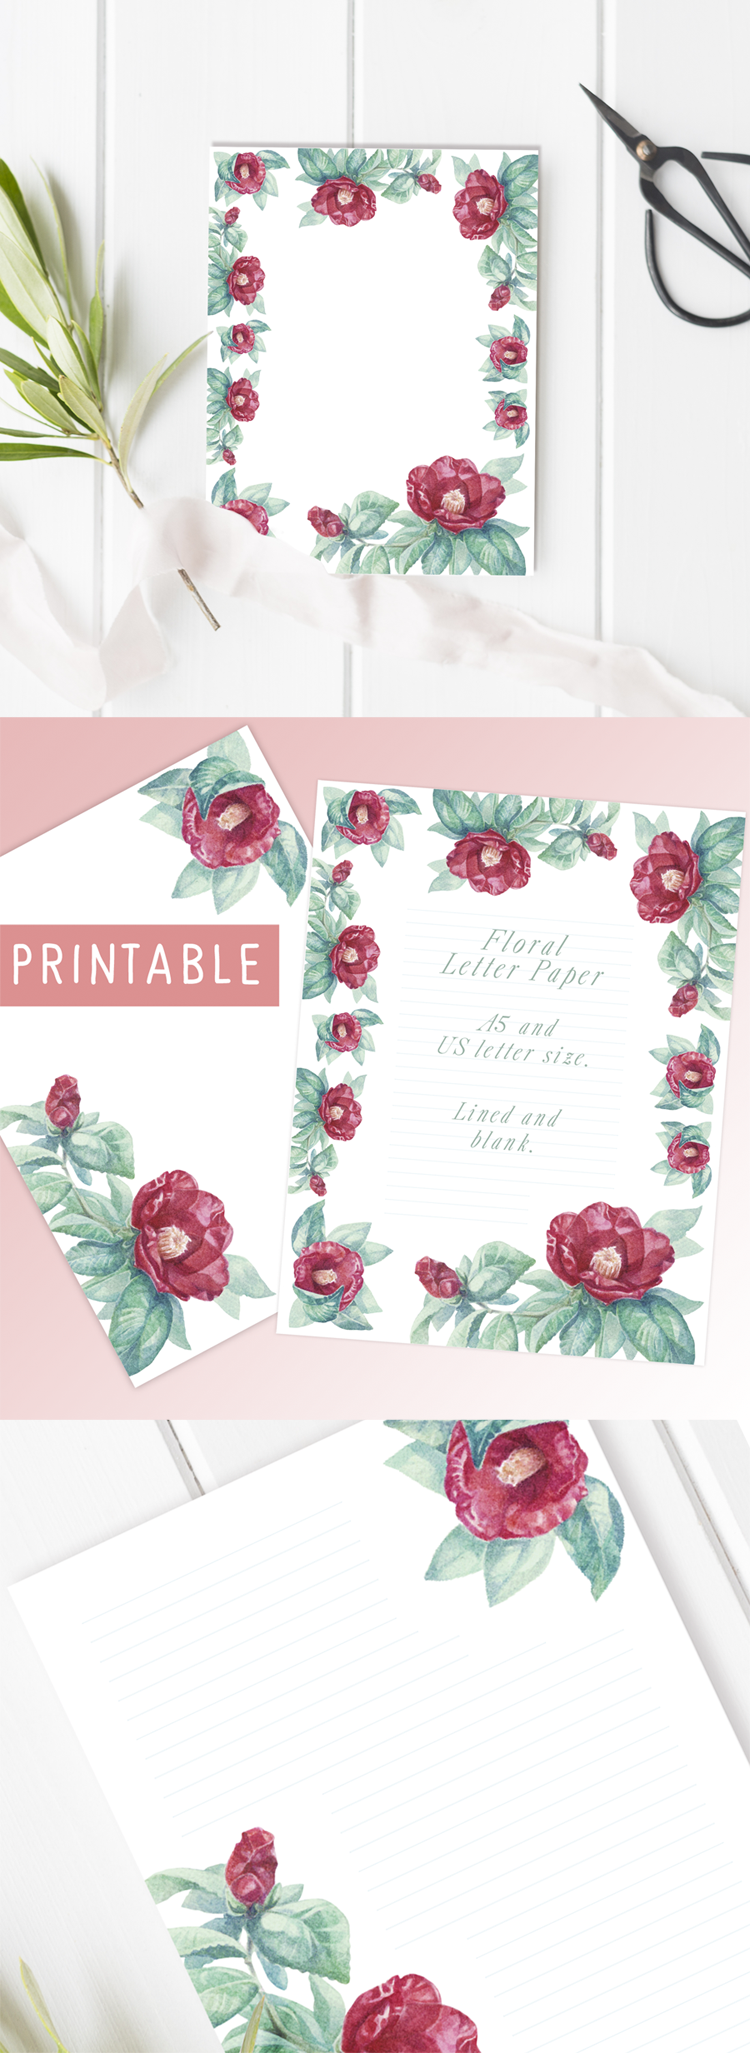 Printable letter papers - free watercolor crystal letter paper printable & Etsy digital file Camellia flower letter paper set.  Romantic vintage stationery printables.